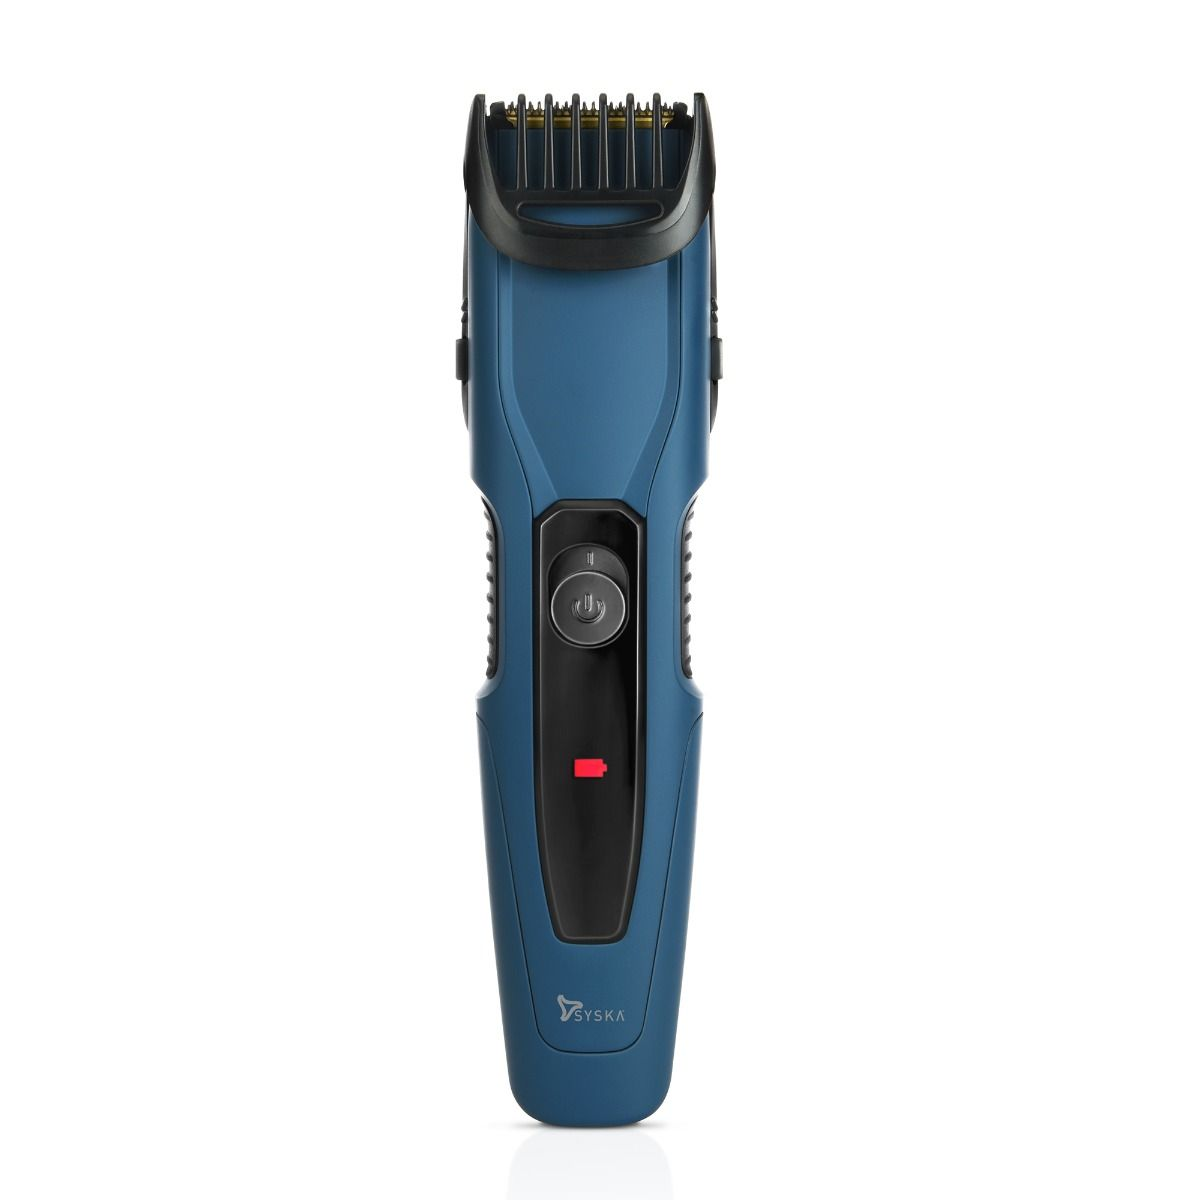 Syska HT1250 Runtime: 90 min Trimmer for Men  (Blue)